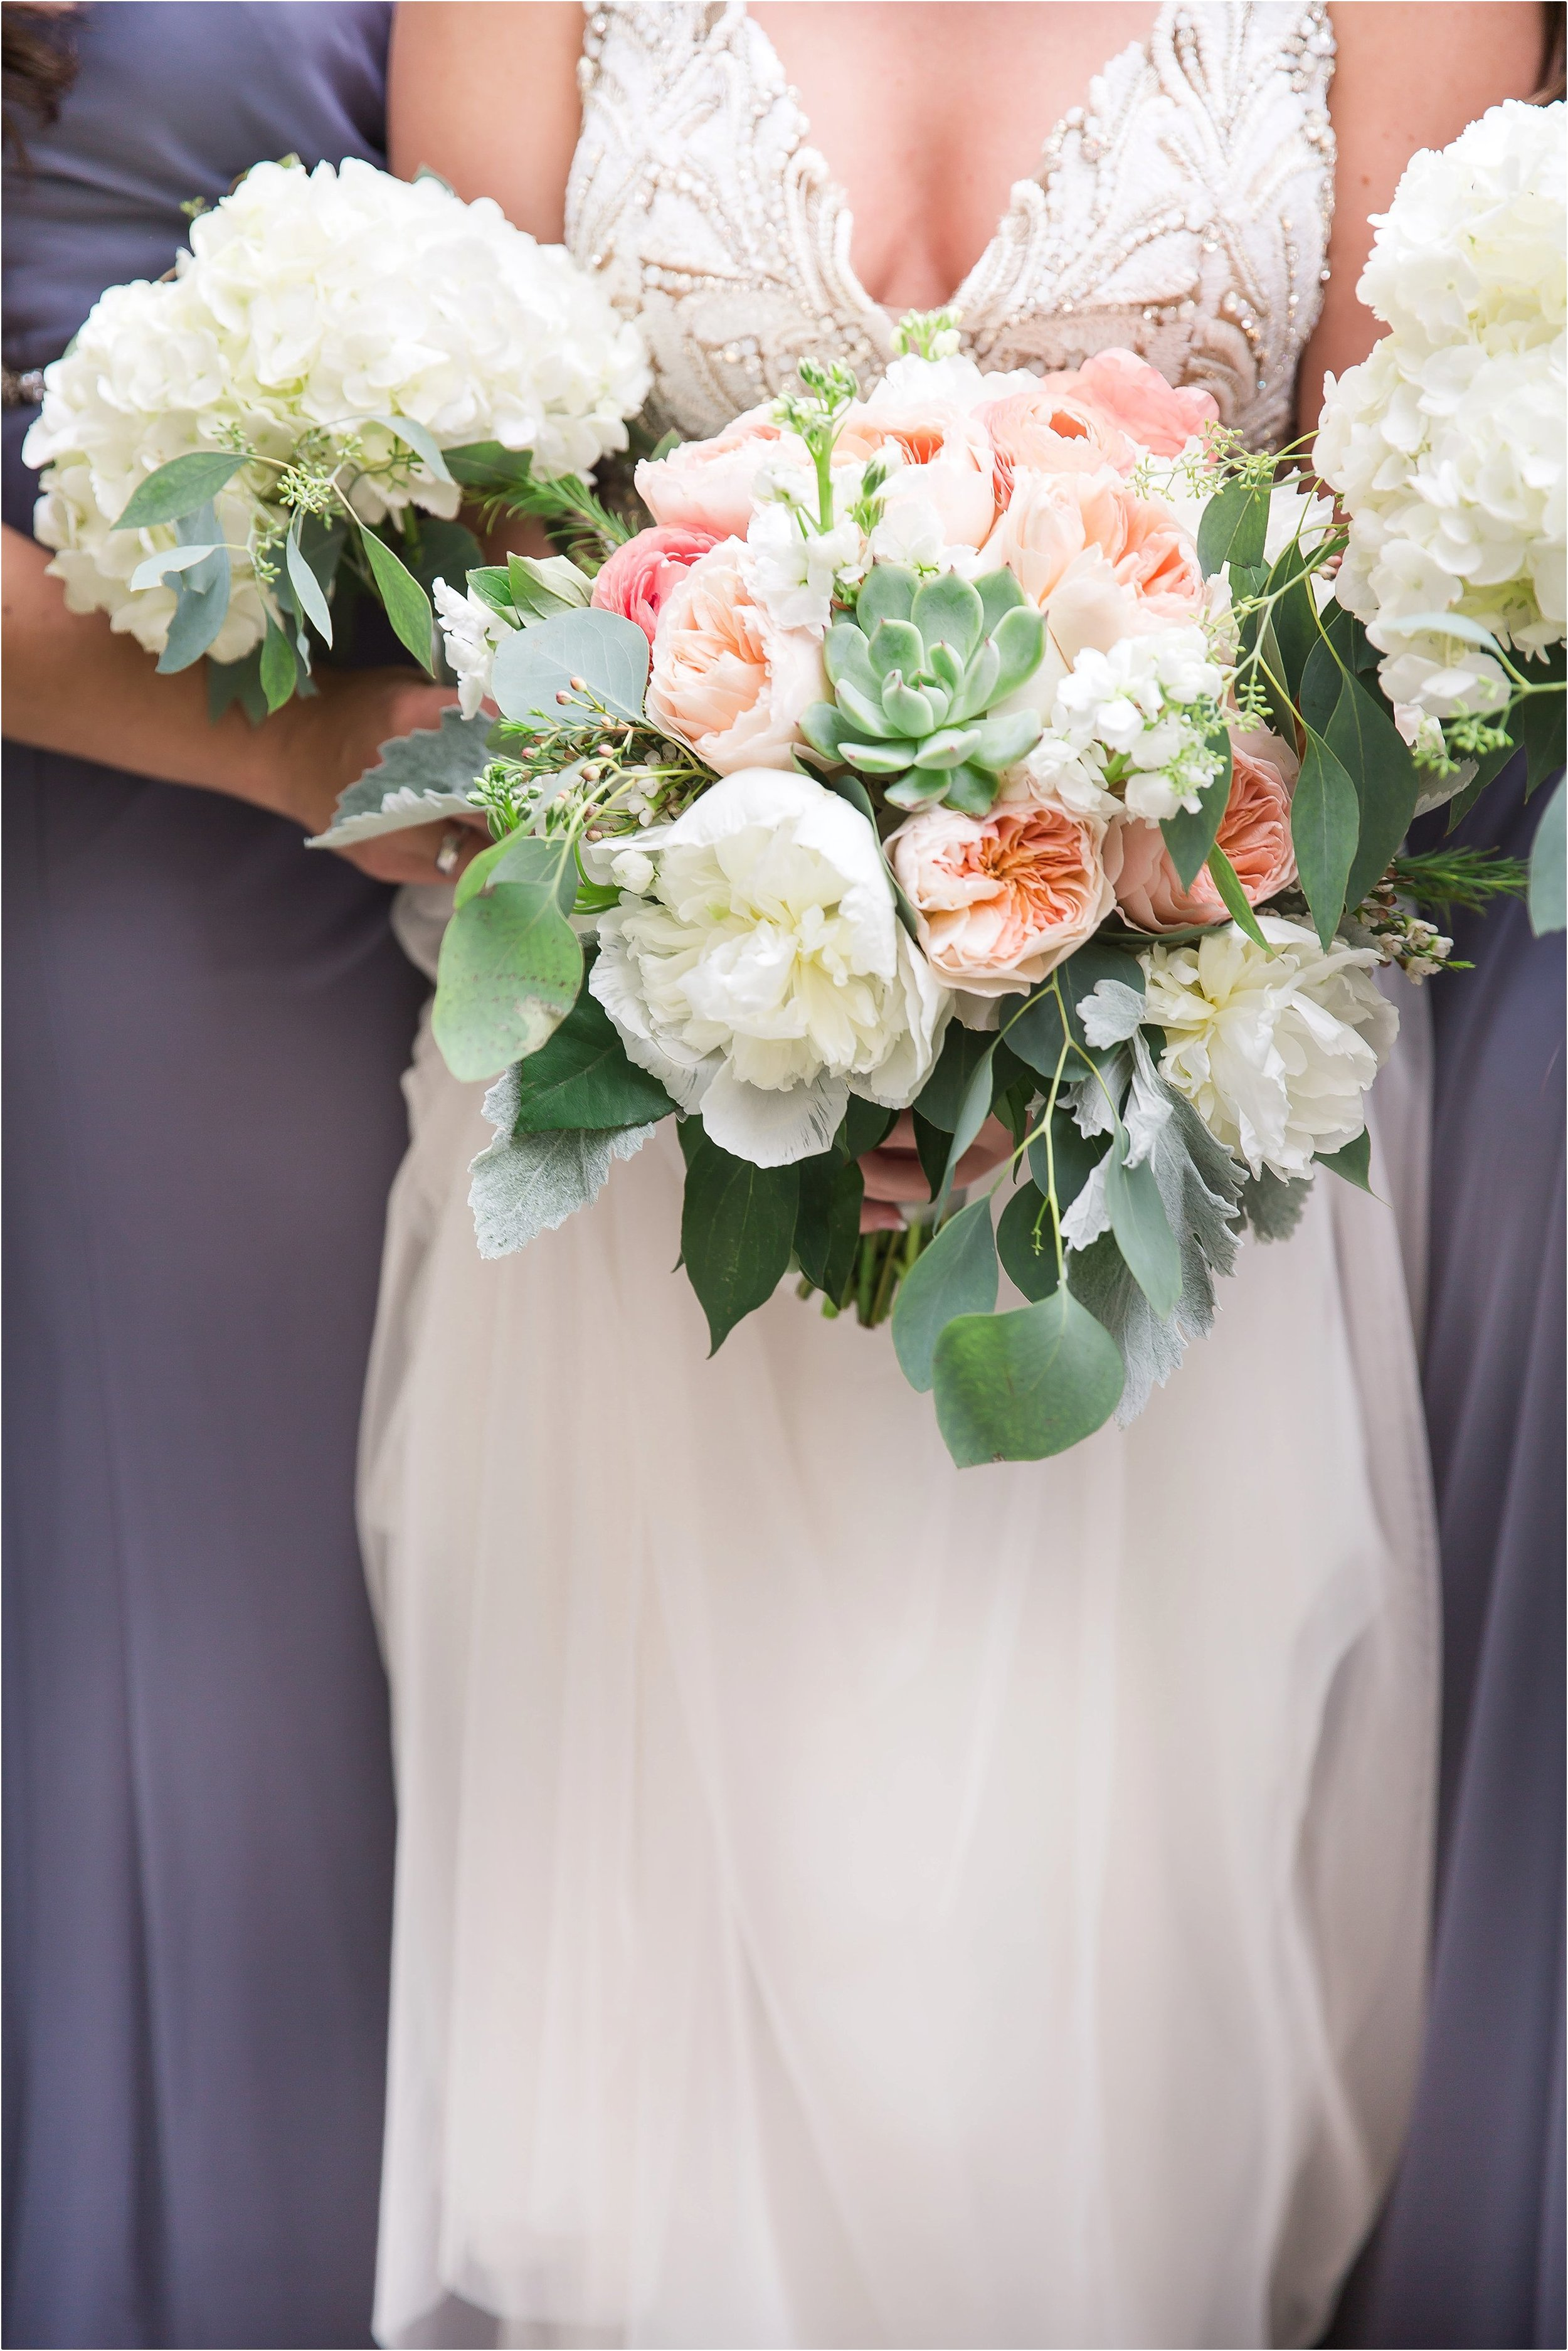 Bridesmaids in grey with white bouquets at Wyndham Grand Resort at Bonnet Creek Wedding